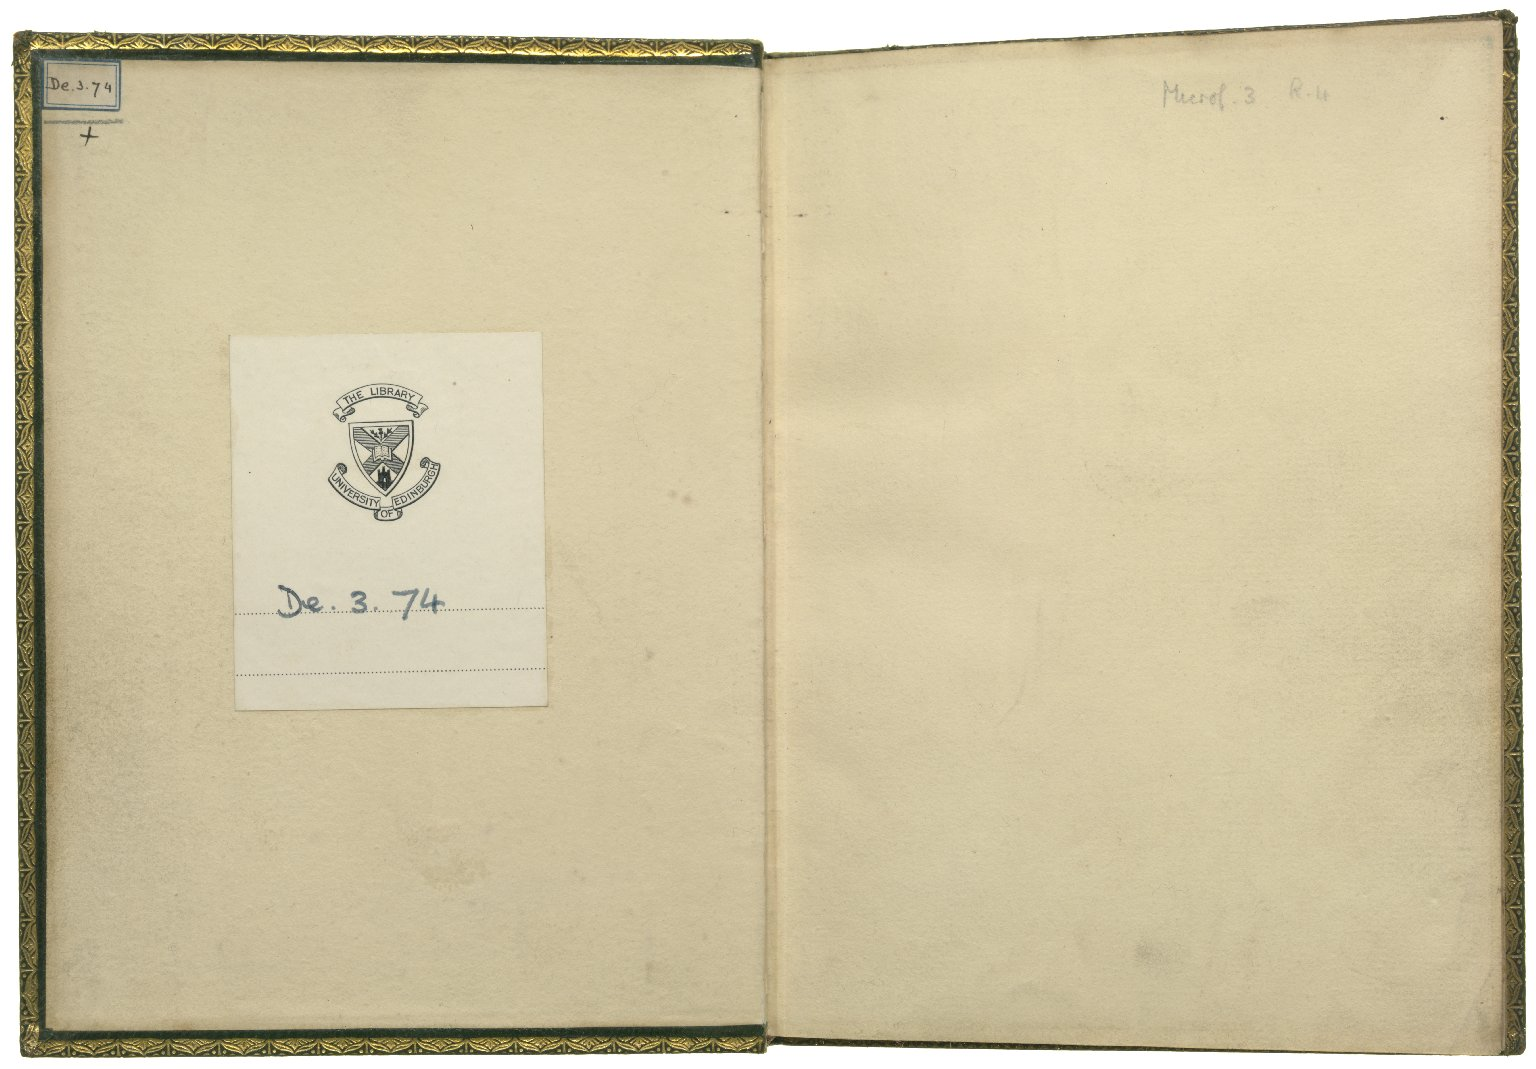 Loves Labours Lost, 1598, Inside front cover & front end paper recto